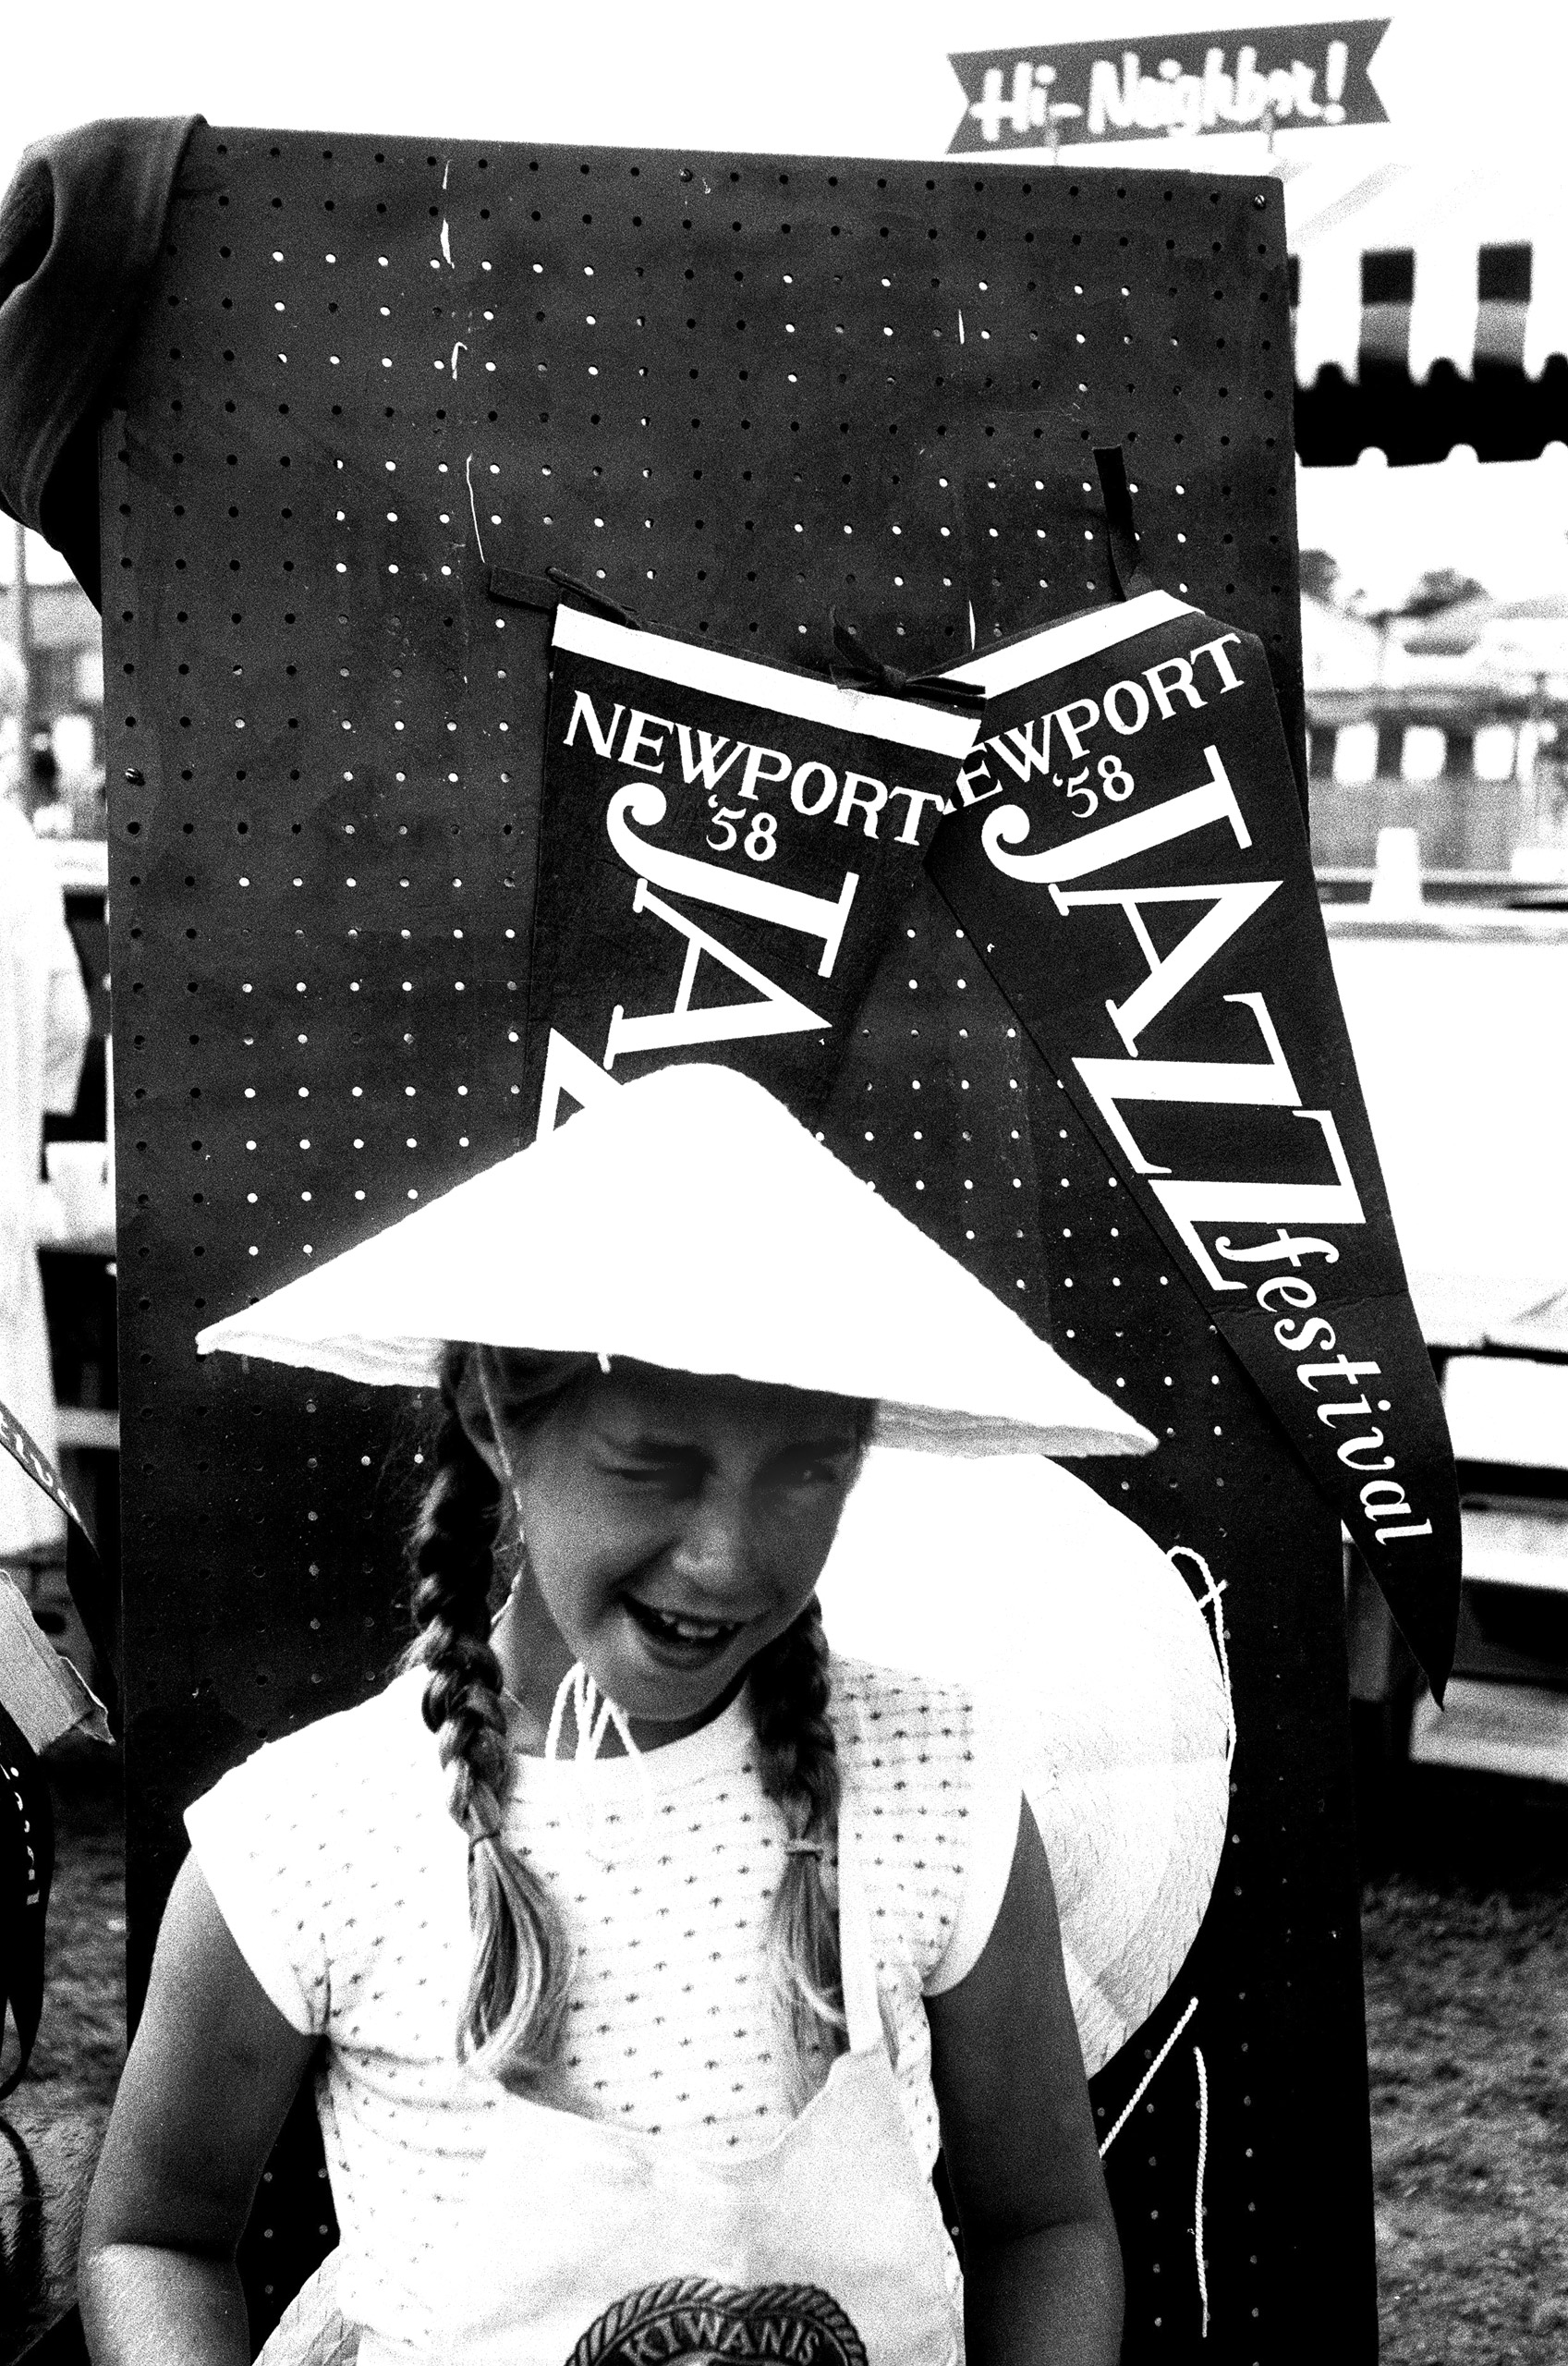 A young fan winks at the camera at the  American Jazz Festival (later renamed the Newport Jazz Festival) in July 1958 in Newport, R.I.